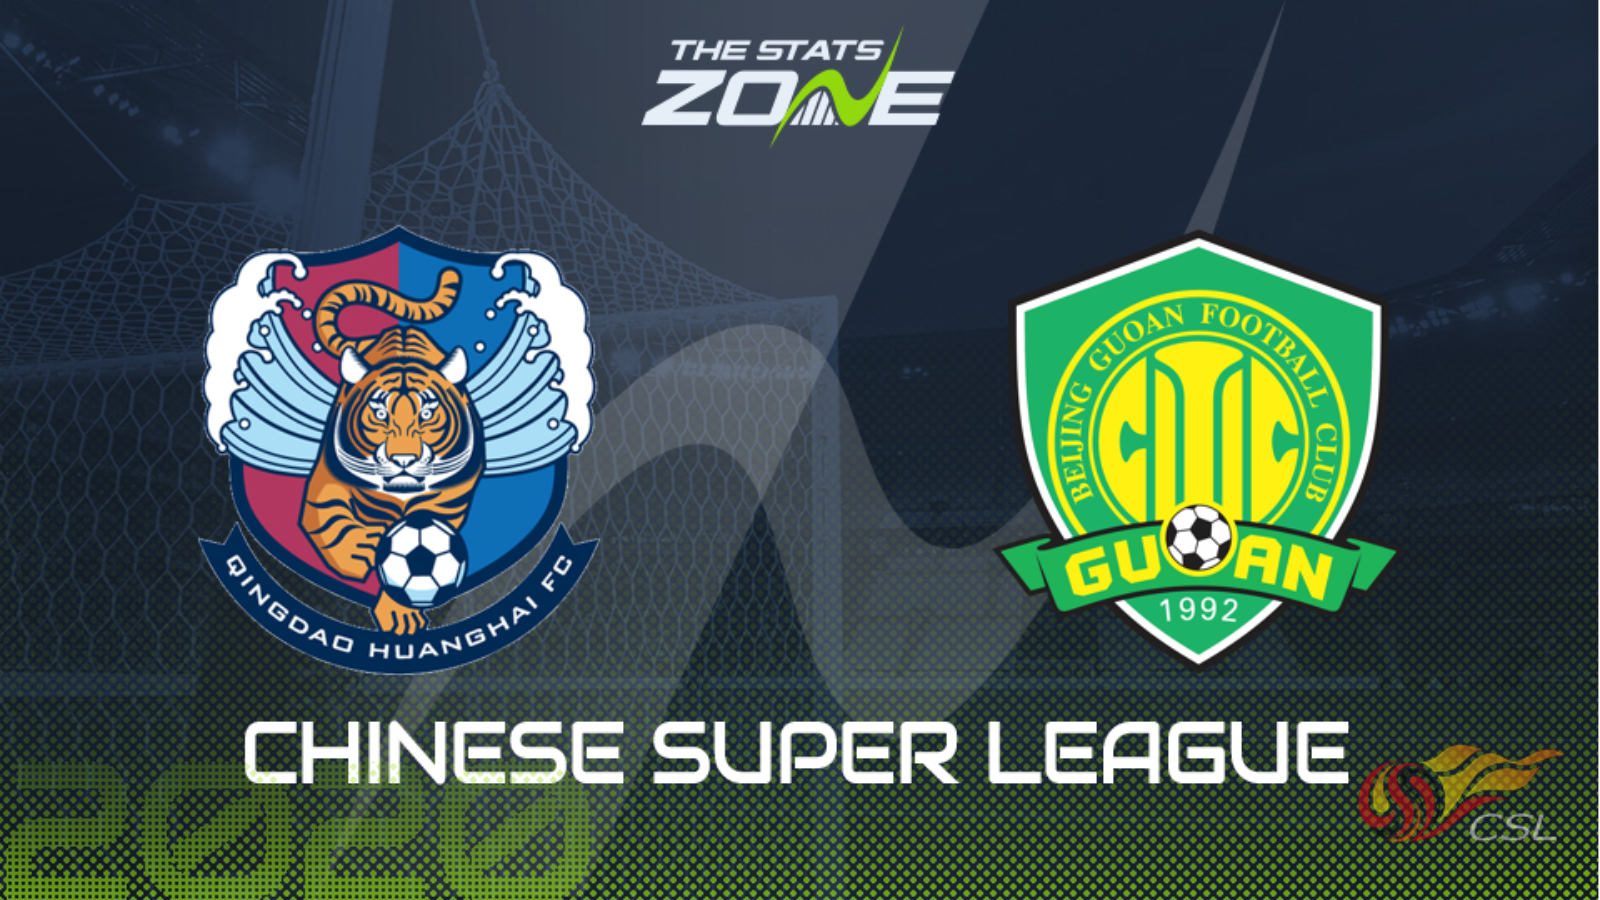 2020 Chinese Super League – Qingdao Huanghai vs Beijing Guoan Preview & Prediction - The Stats Zone